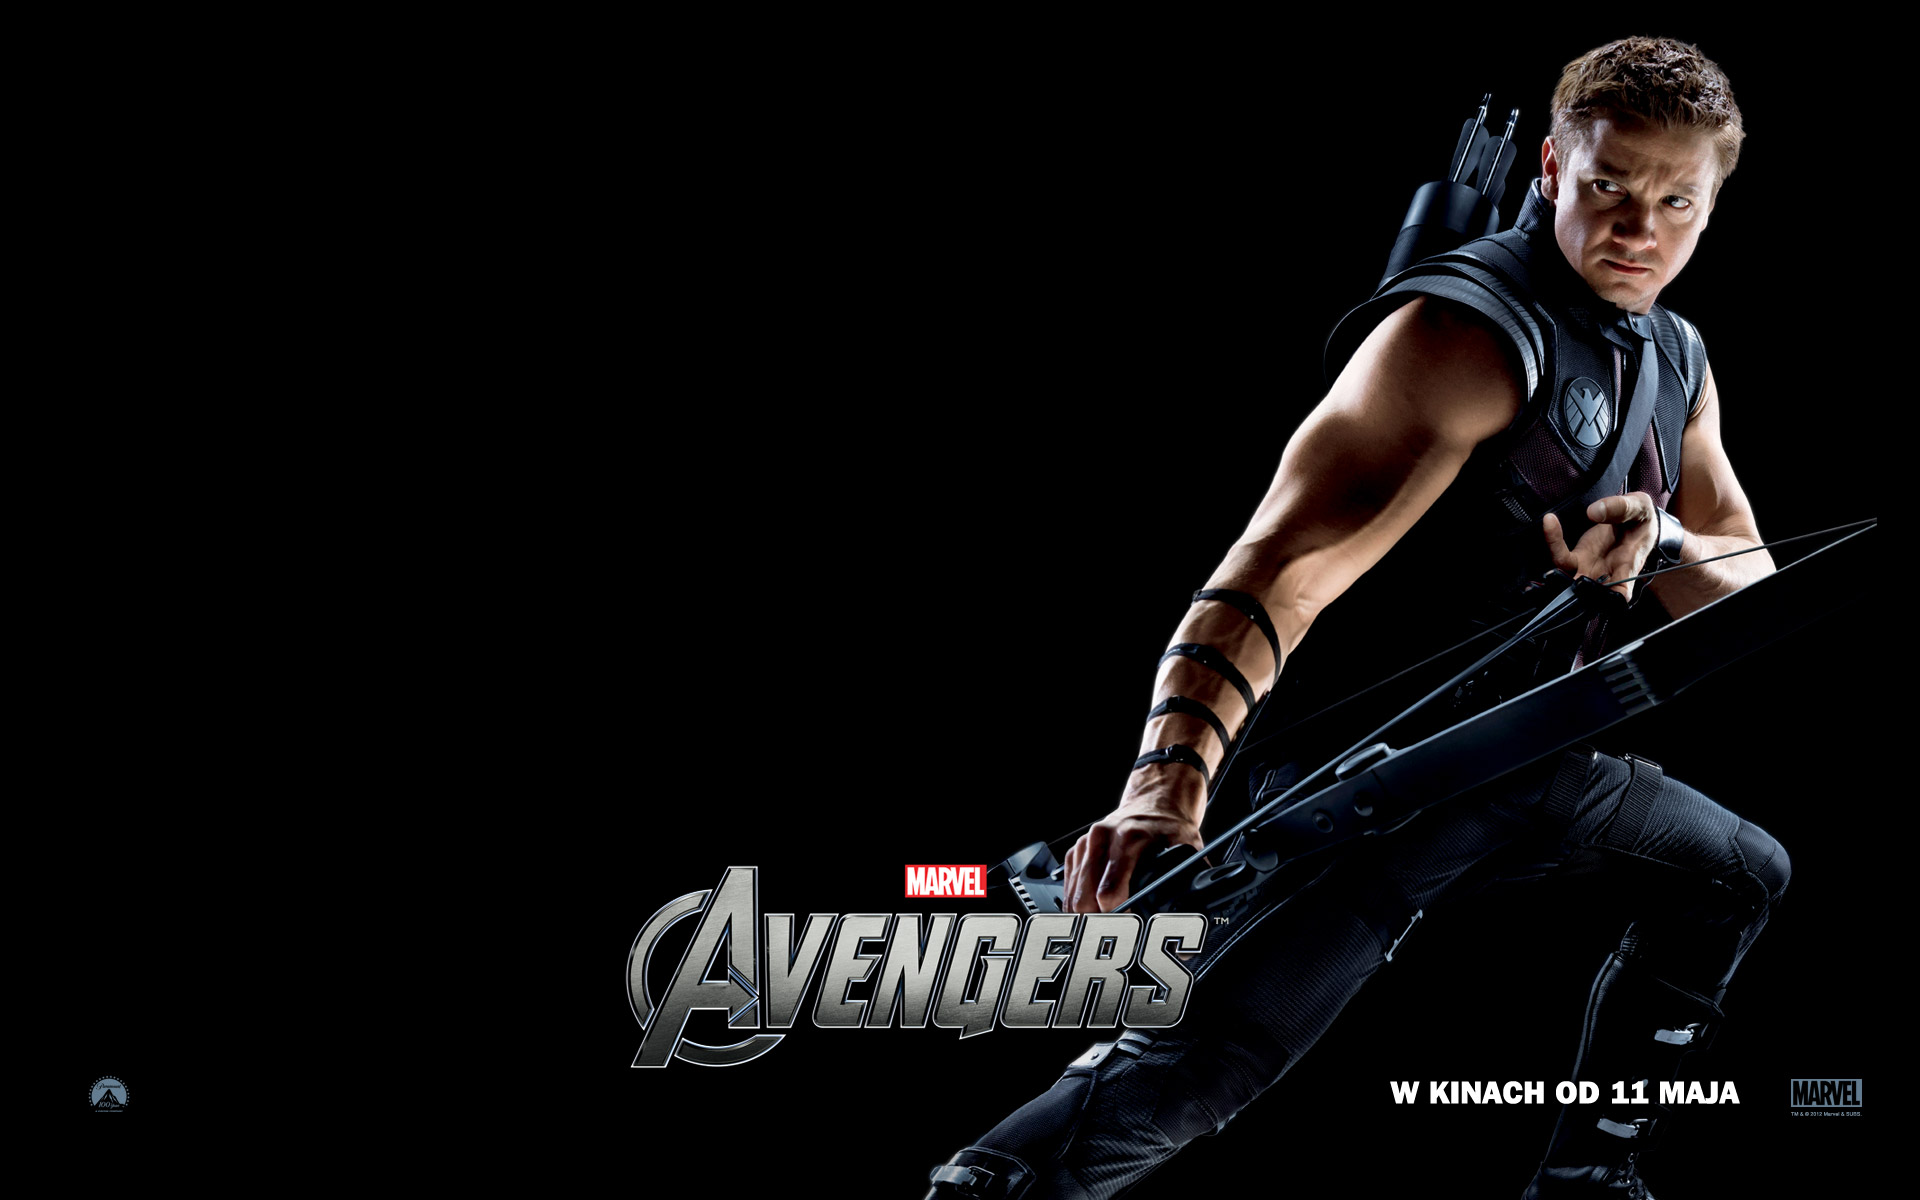 avengers wallpaper tapety wallpapers wysiwyg avengersmovie 1920x1200